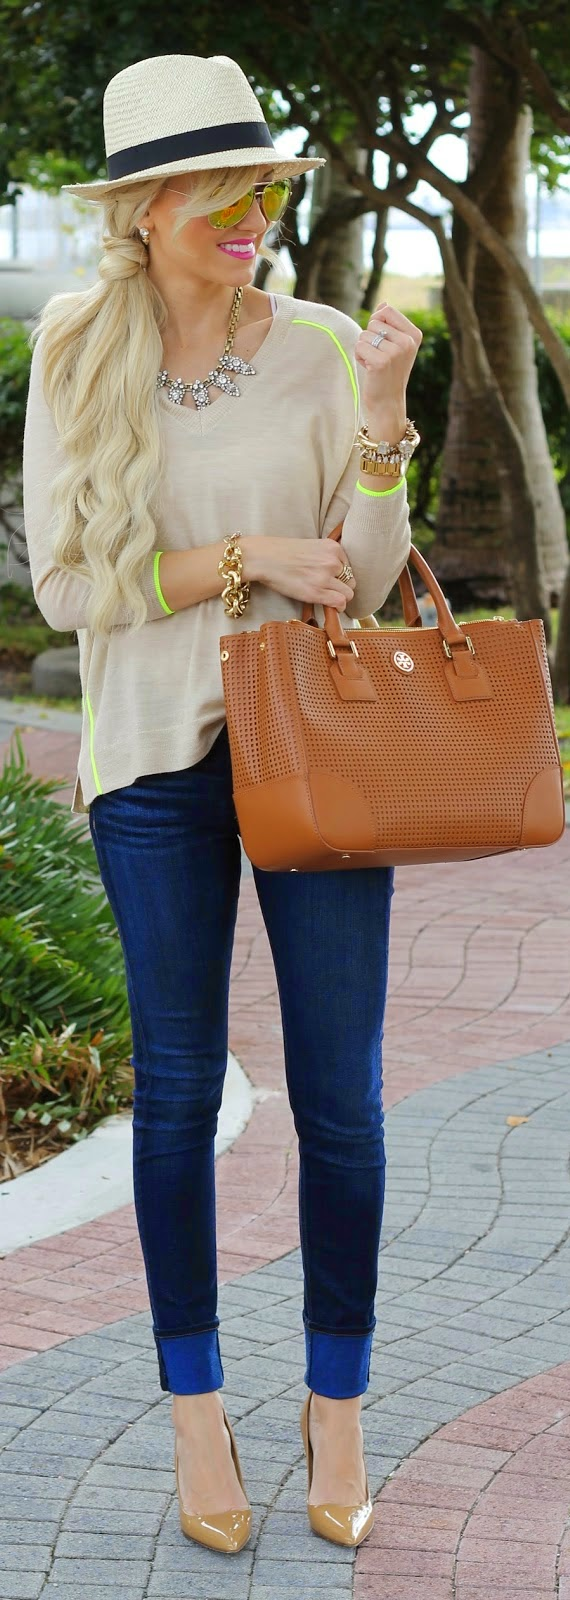 J.Crew Sweater with Love Neon Detailing and Skinnies Jeans | Chic Street Outfits